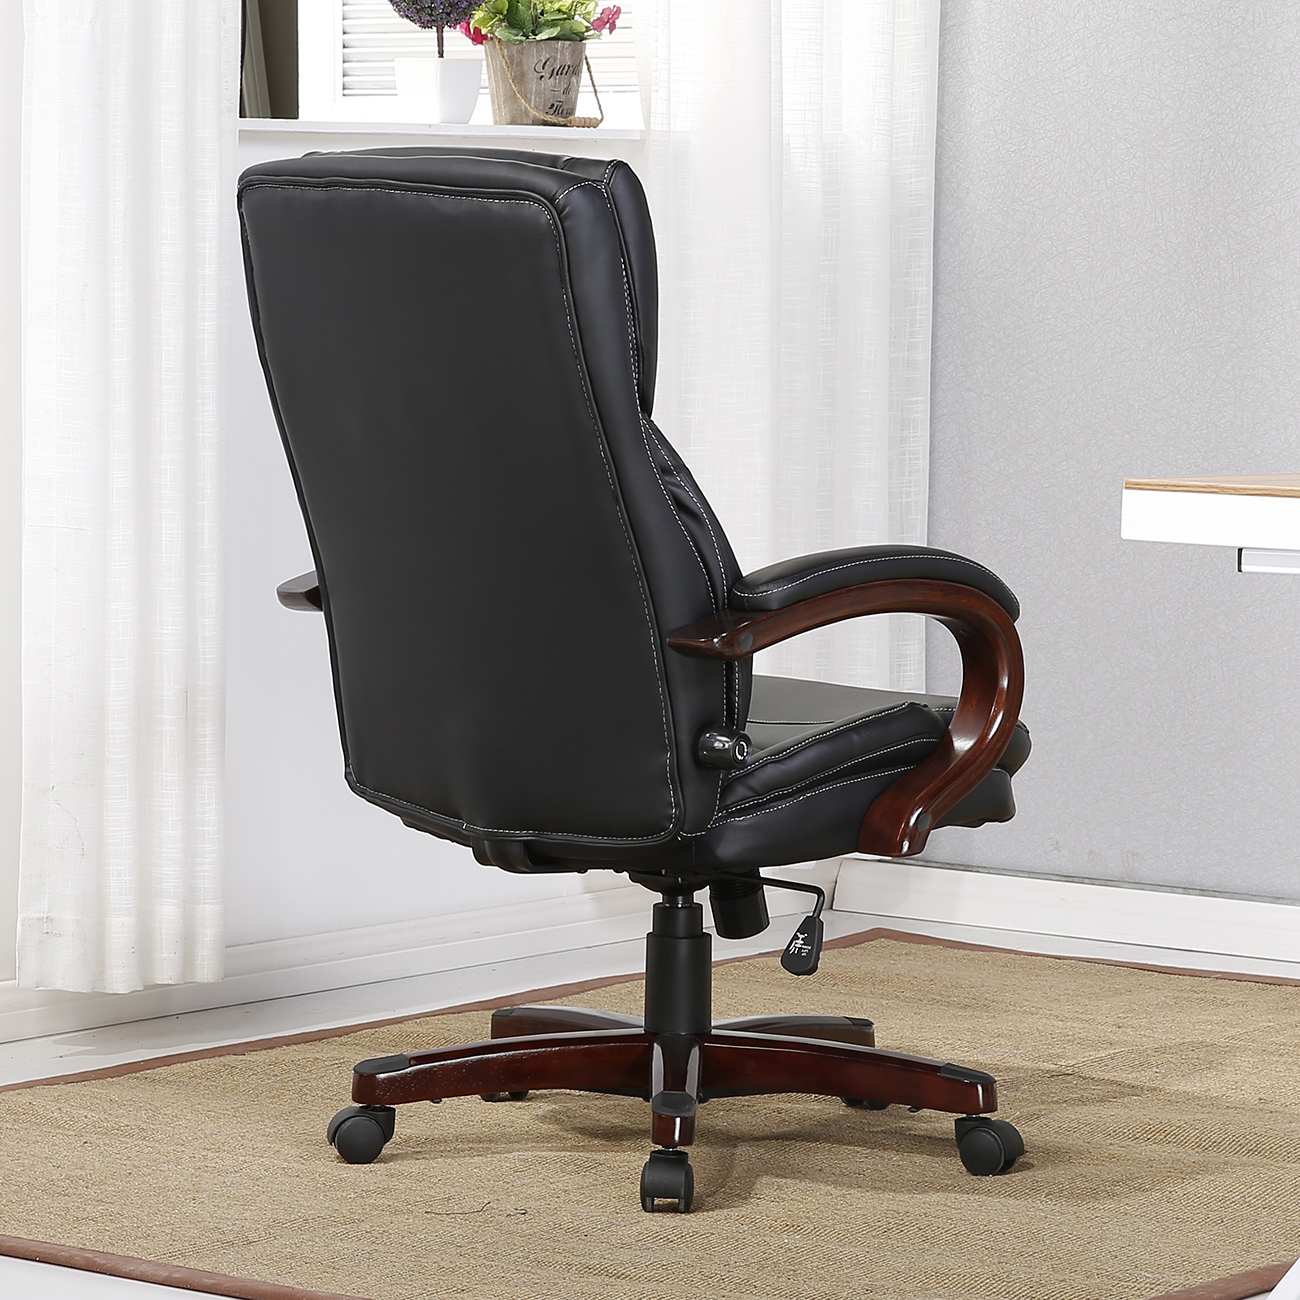 Back Support Chair Executive Chair High Back Office Desk Arm Lumbar Support